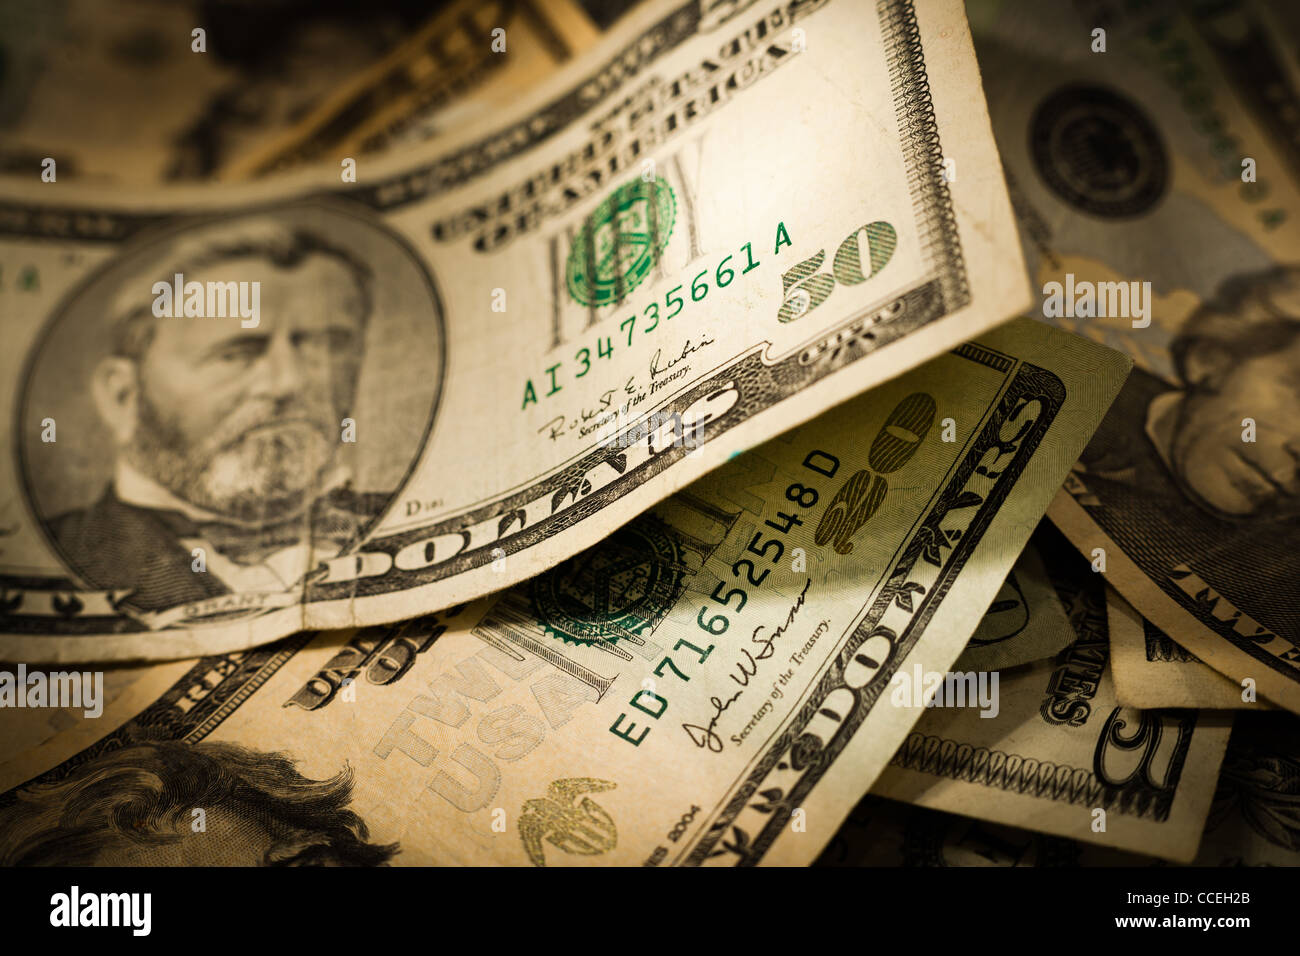 American dollars (currency) highlighting a $50 USD bill. - Stock Image